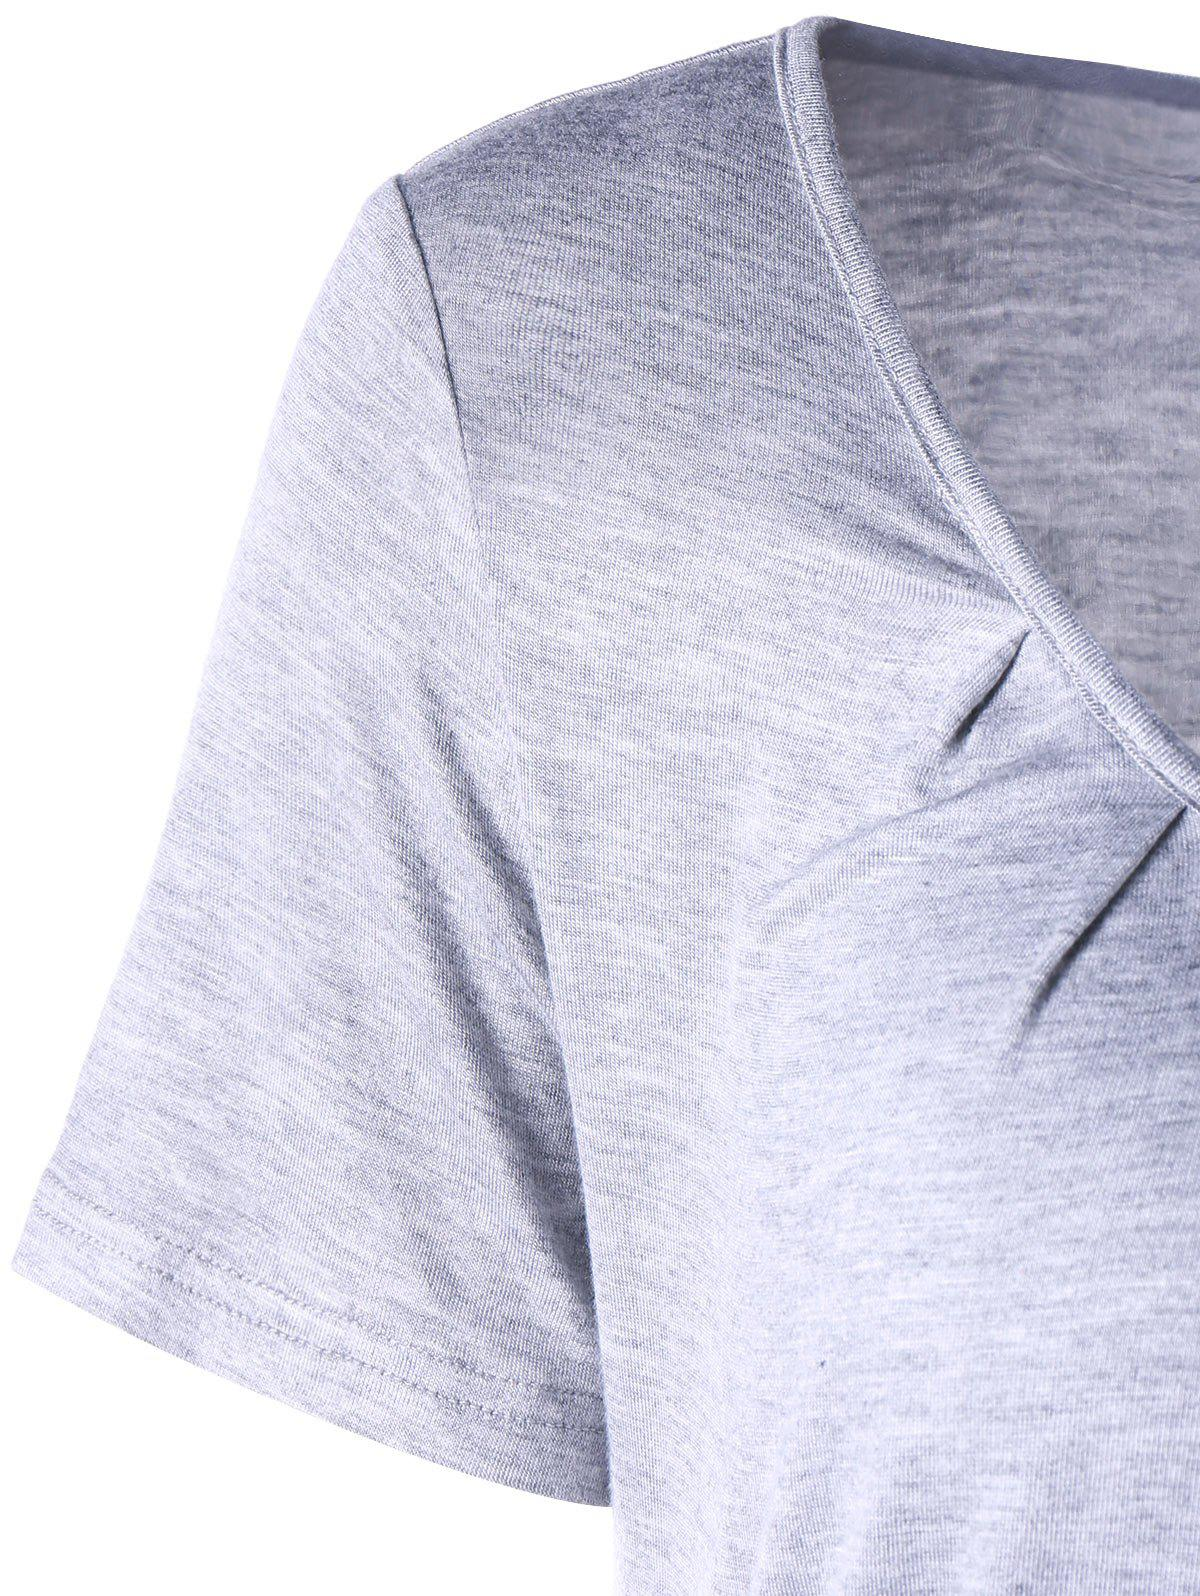 Scoop Neck Ruched Top - LIGHT GRAY L